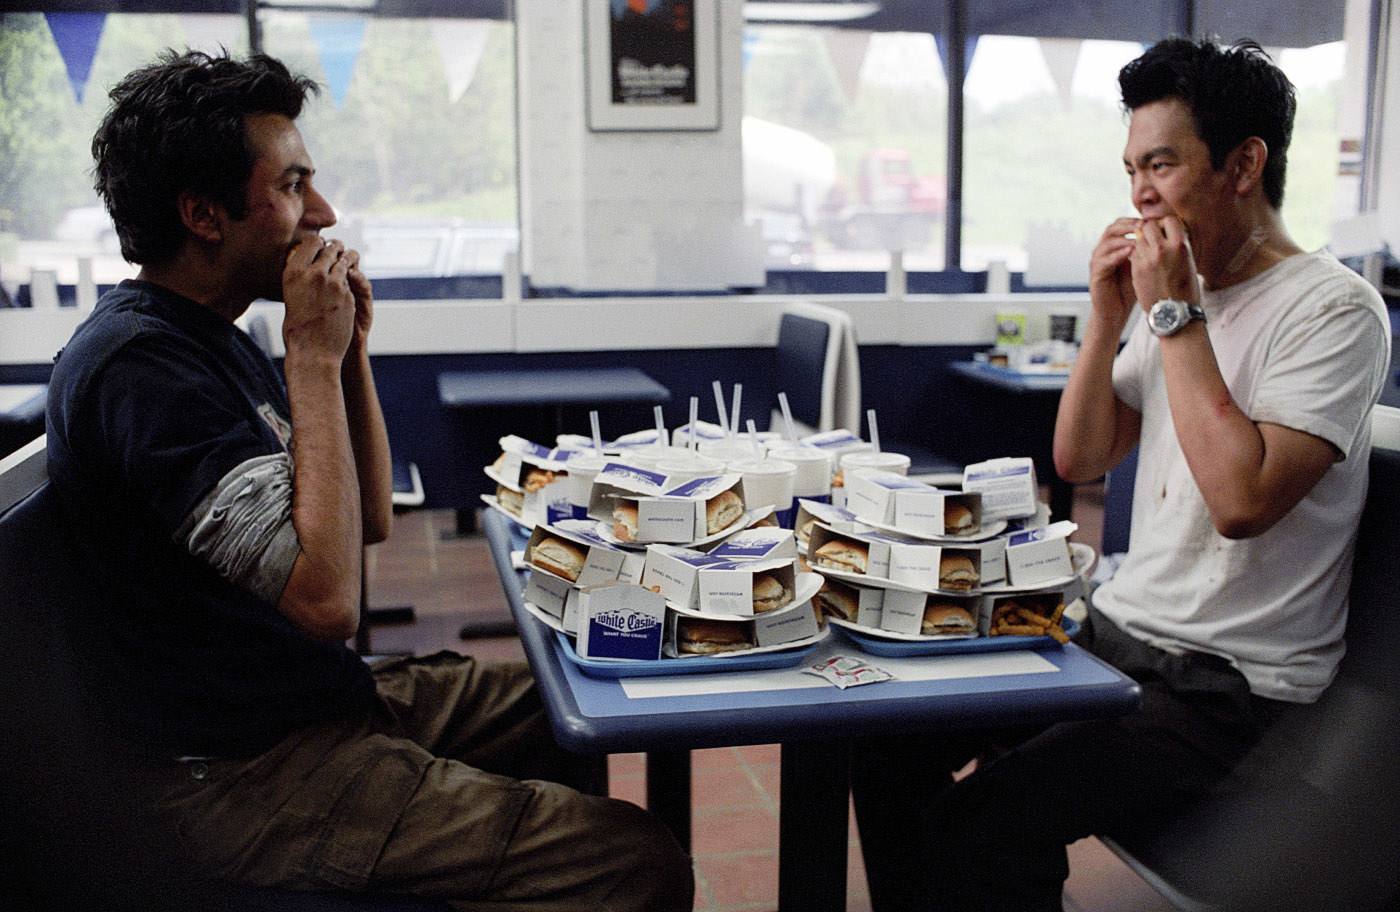 Kumar and Harold eat a bunch of sliders from White Castle